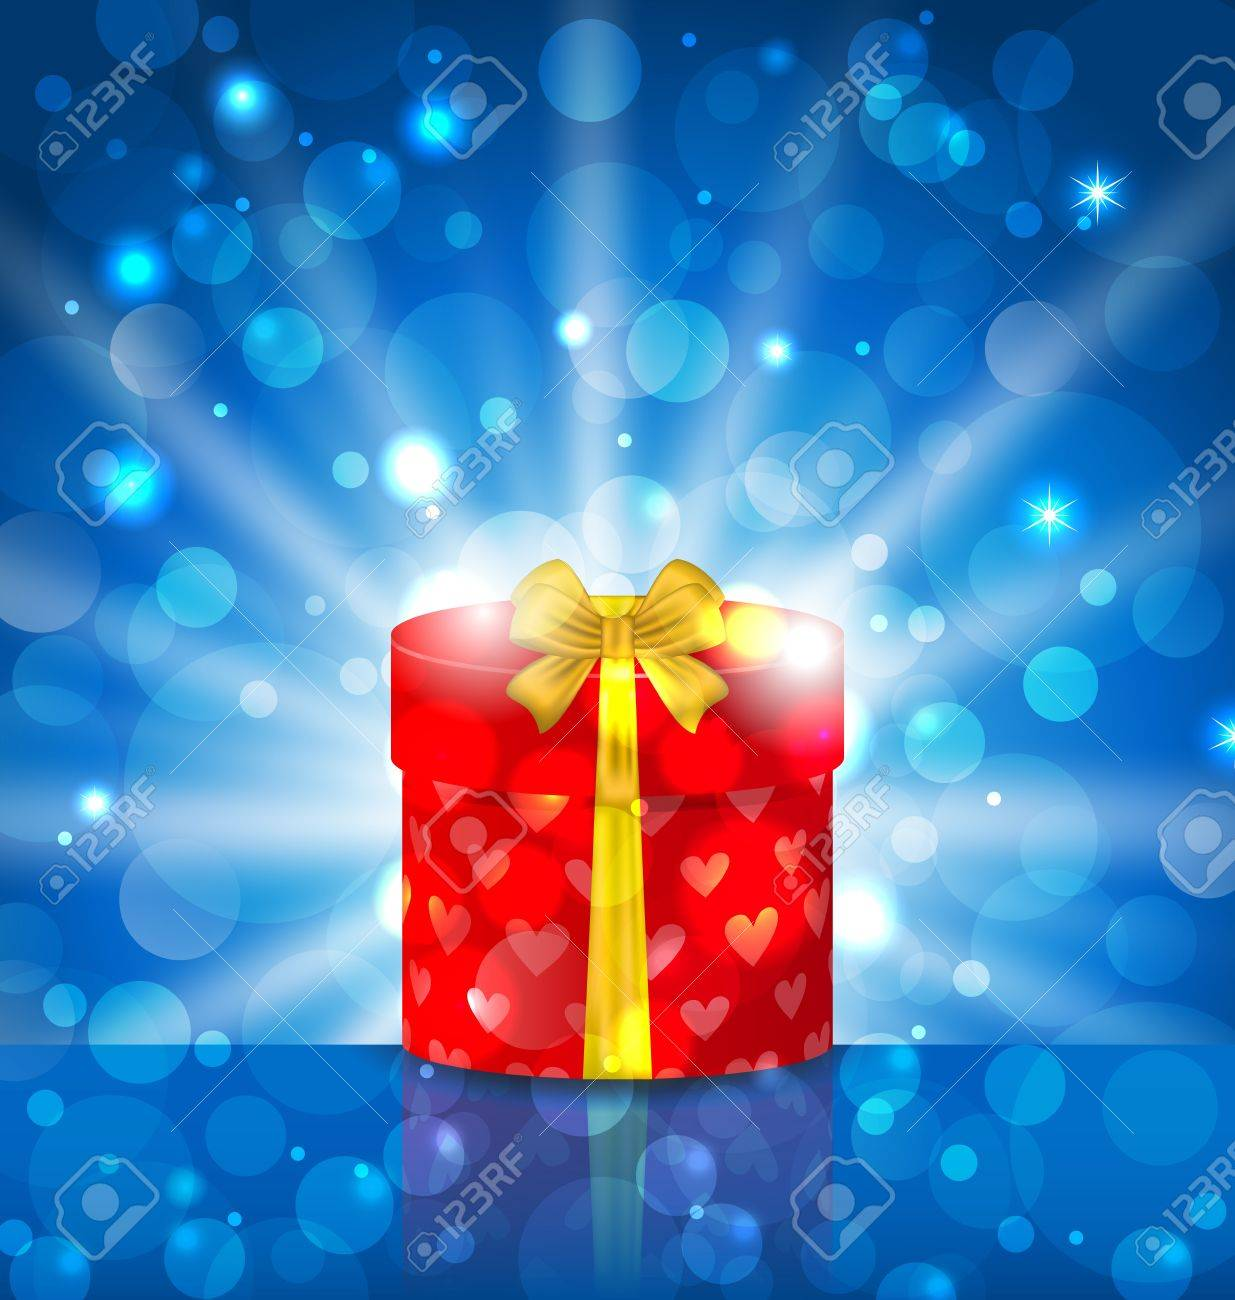 Illustration round gift box on light background with glow - vector Stock Illustration - 22096290